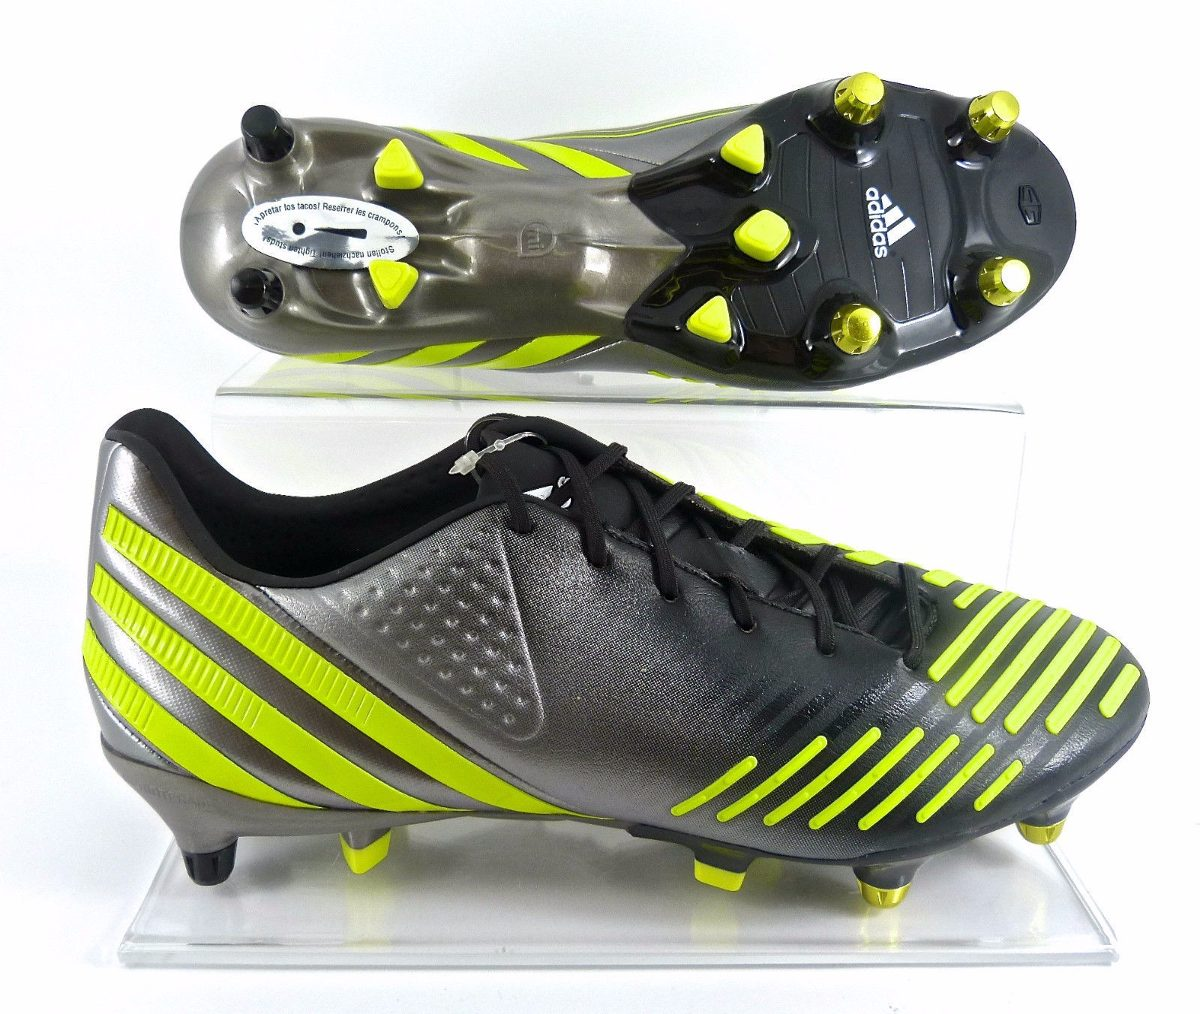 where can i buy chuteira adidas predator lz trx sg prof. trava de aluminio. accc55613b6df